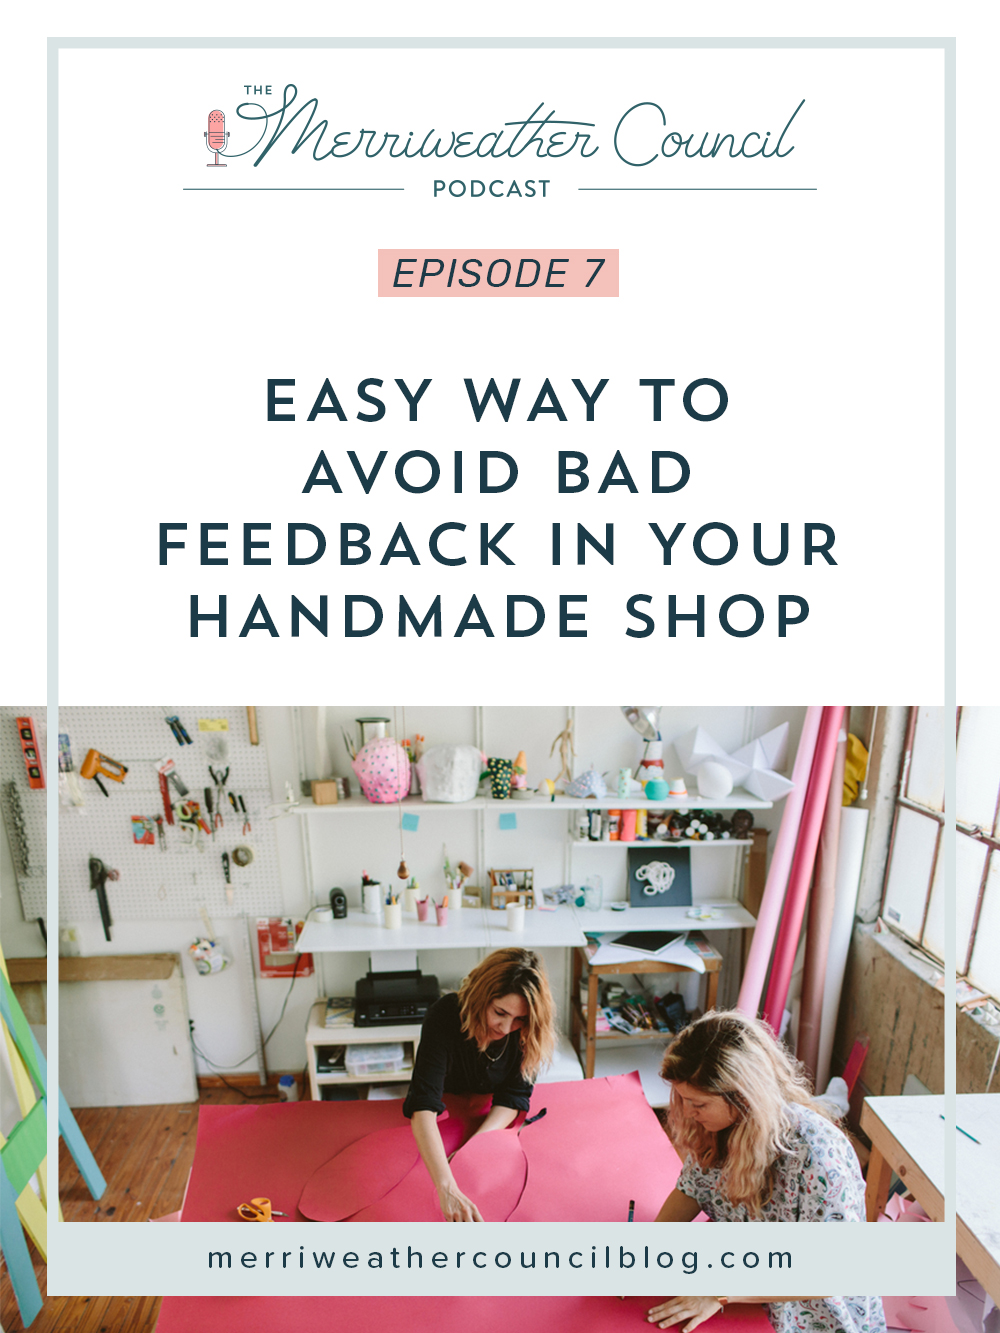 episode 007: 1 Easy Way to Avoid Bad Feedback in your Handmade Shop | the merriweather council podcast